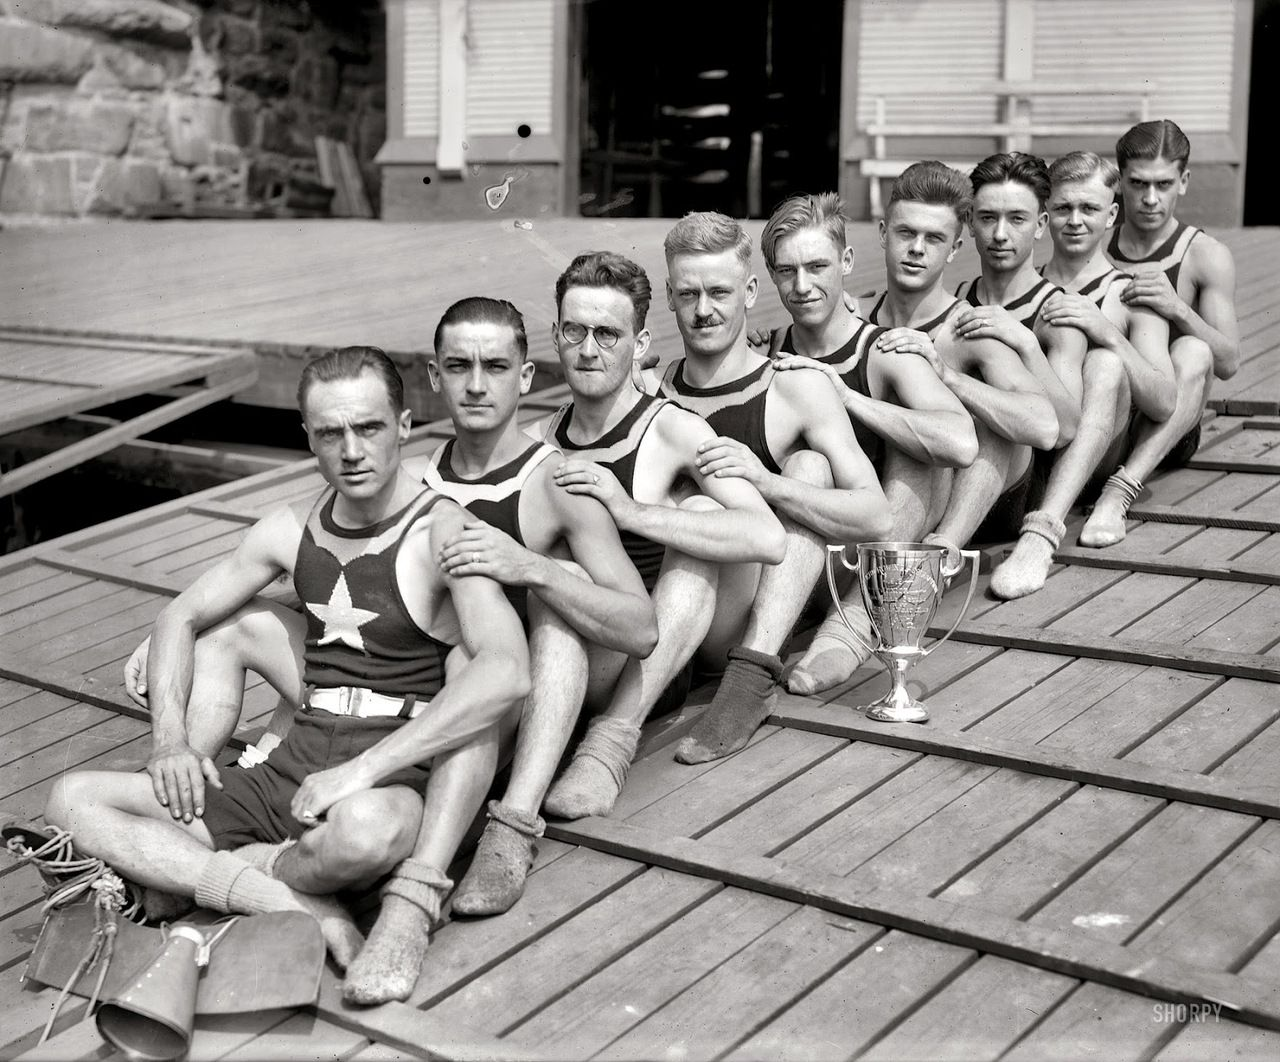 Ivy League Alumni Rowing Club Rowing Crew Rowing Photography Rowing